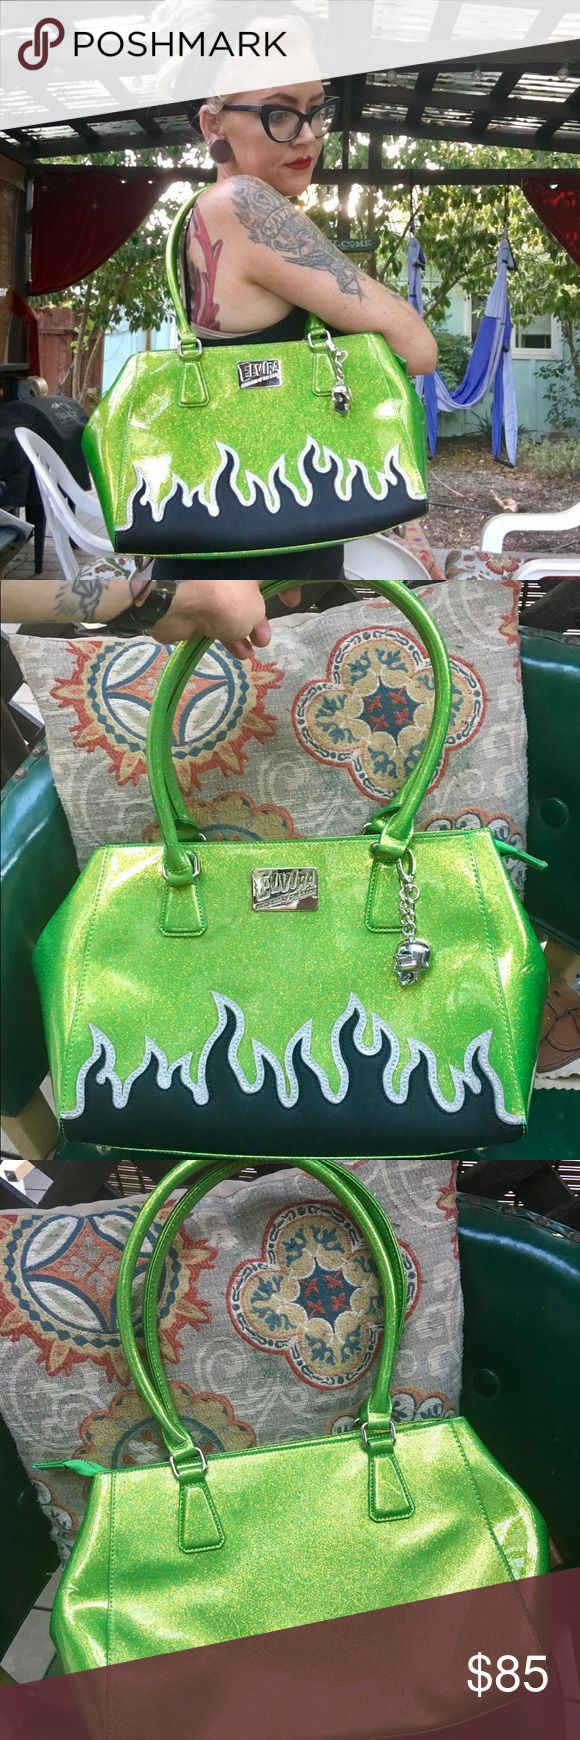 Lux De Ville Elvira Darling Diablo tote bag NEVER USED. So amazing I won't be sad if I have to keep it! No stains, scrapes, or negative marks. SPOTLESS. Lime green with gold glitter. Black matte flames with silver glitter outlines. Gorgeous! Bags Totes